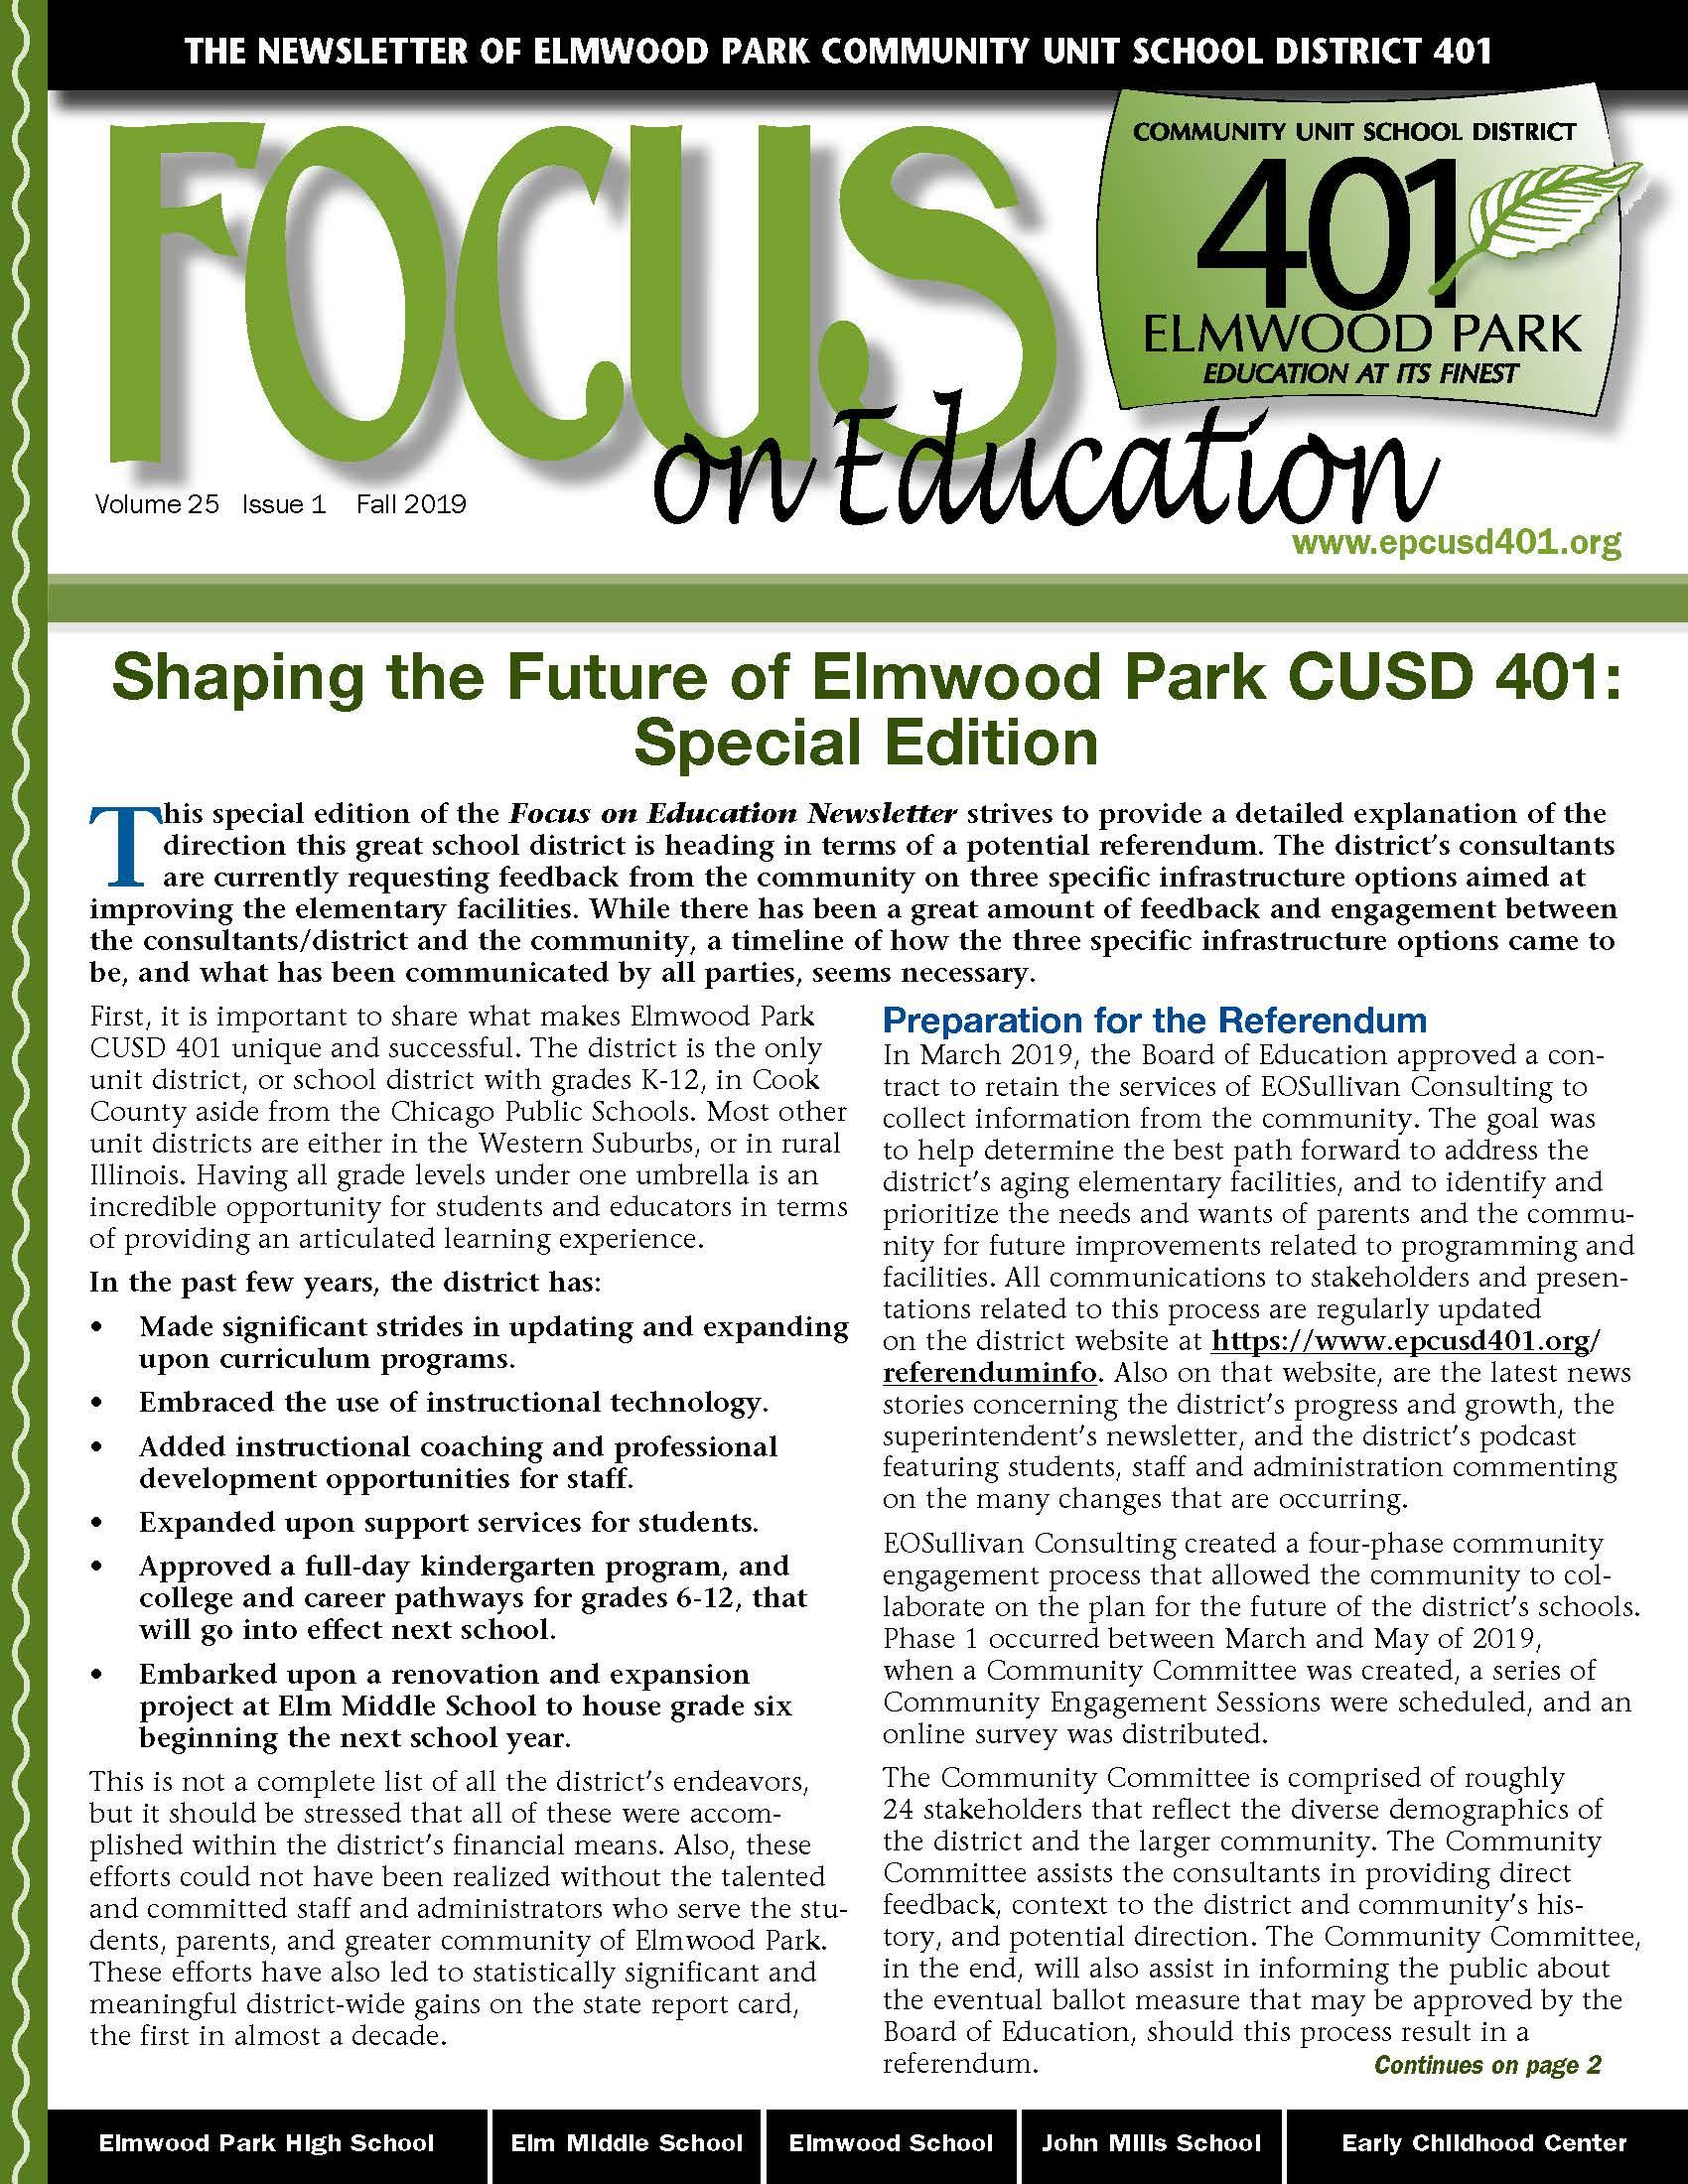 Focus on Education, Vol. 25, Issue 1, Fall 2019